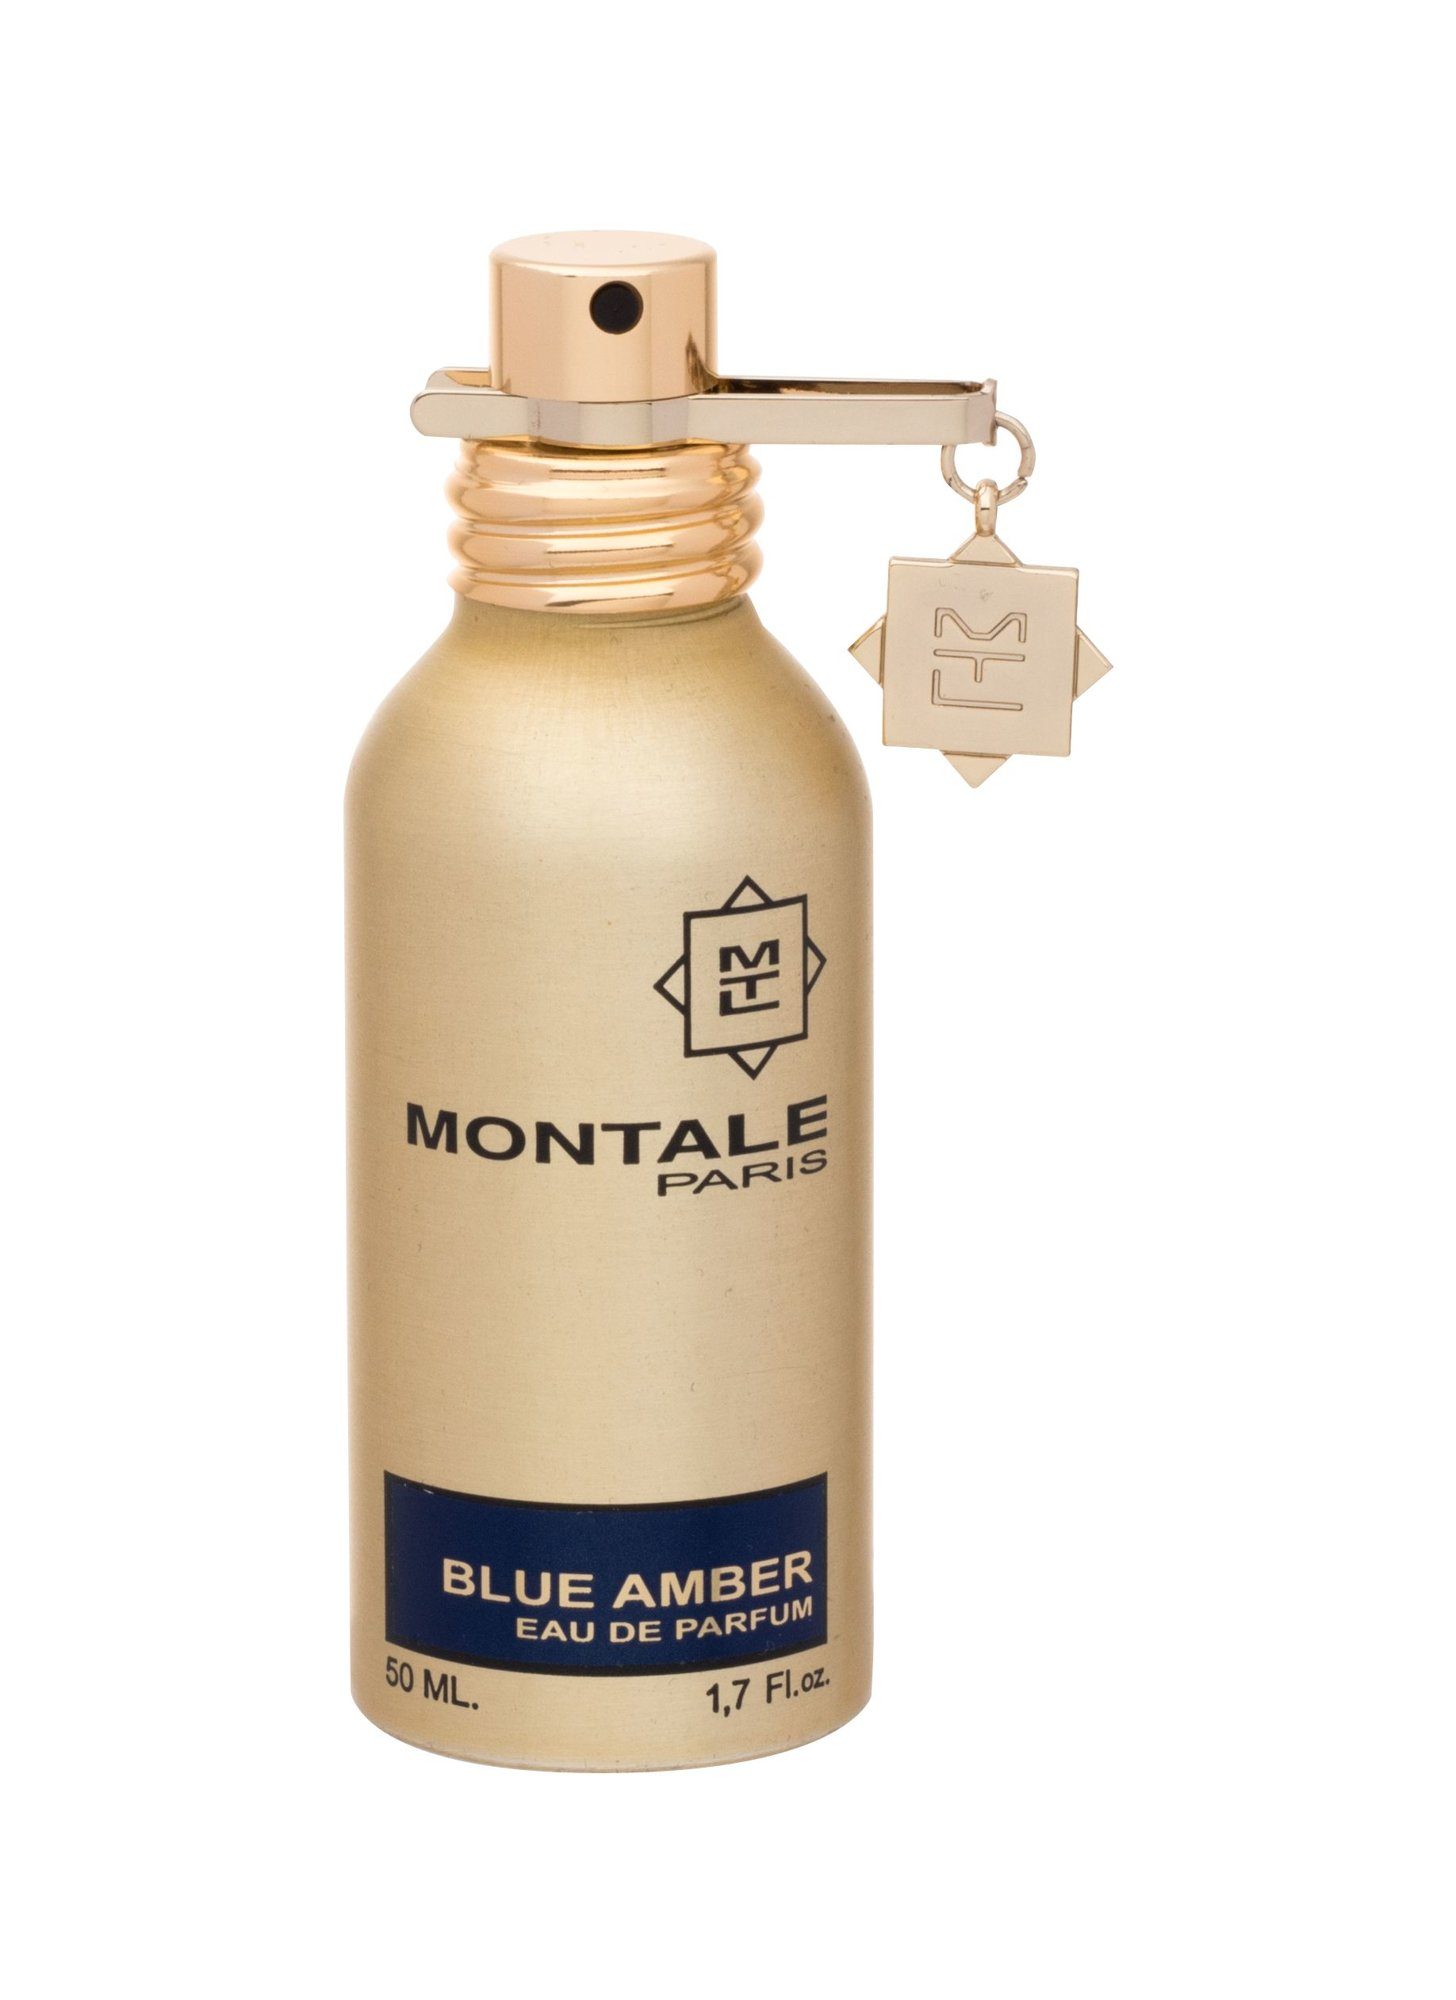 Montale Paris Blue Amber EDP 50ml